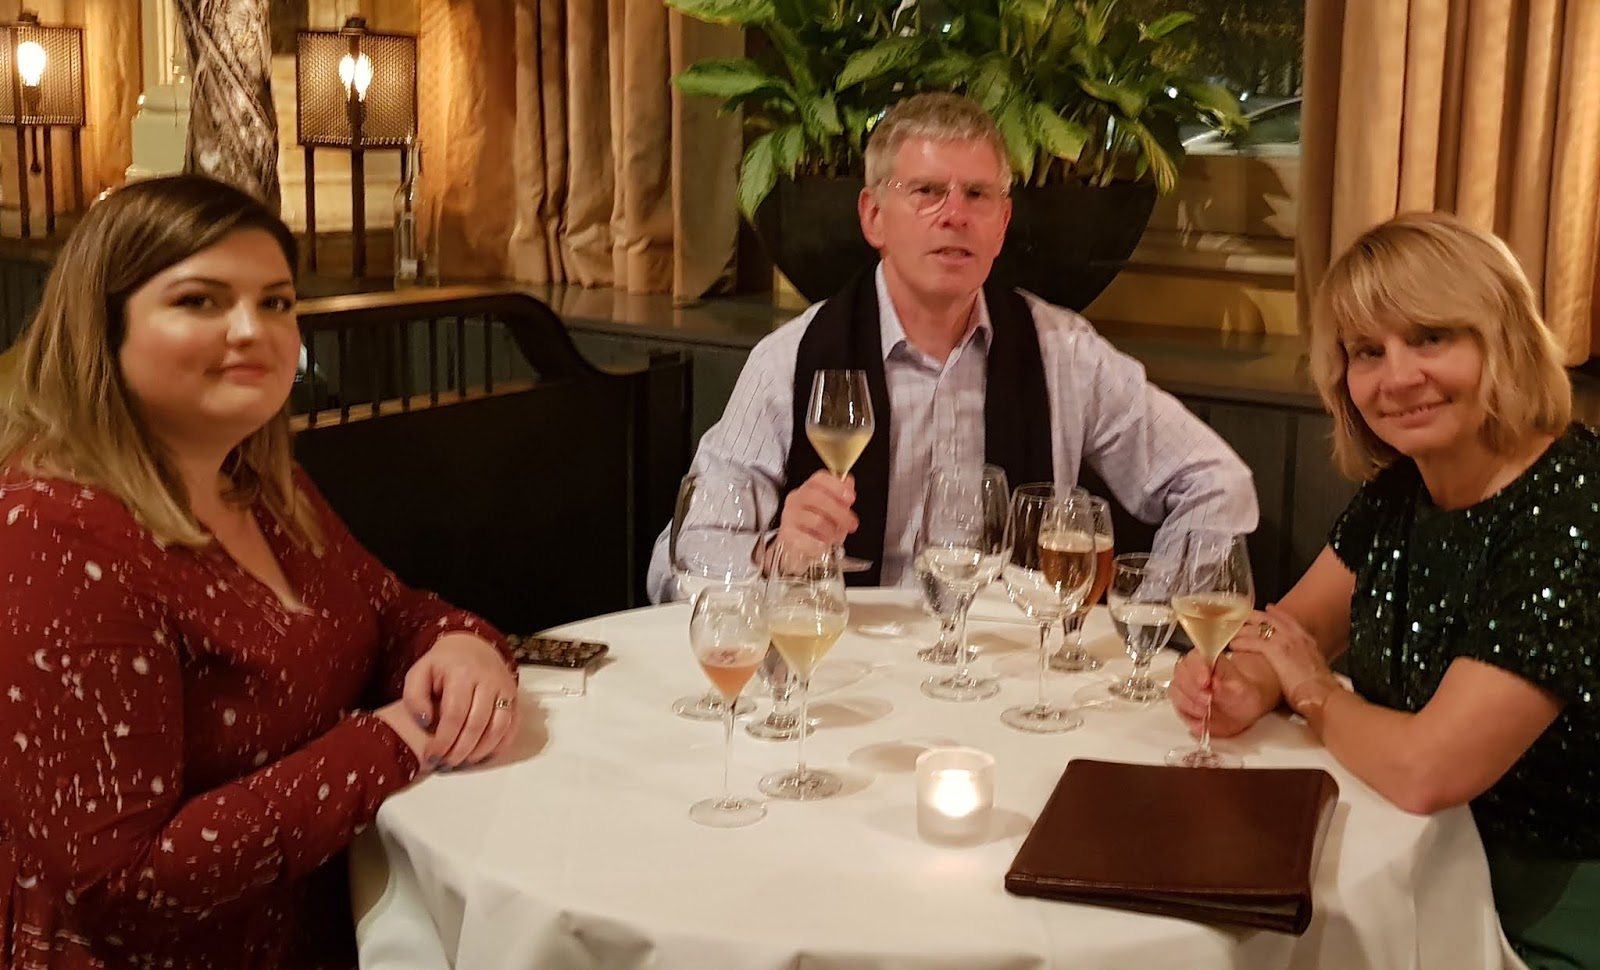 Dining at The Gilbert Scott Restaurant in London:  Is This Mutton's Gail Hanlon with husband and stepdaughter.